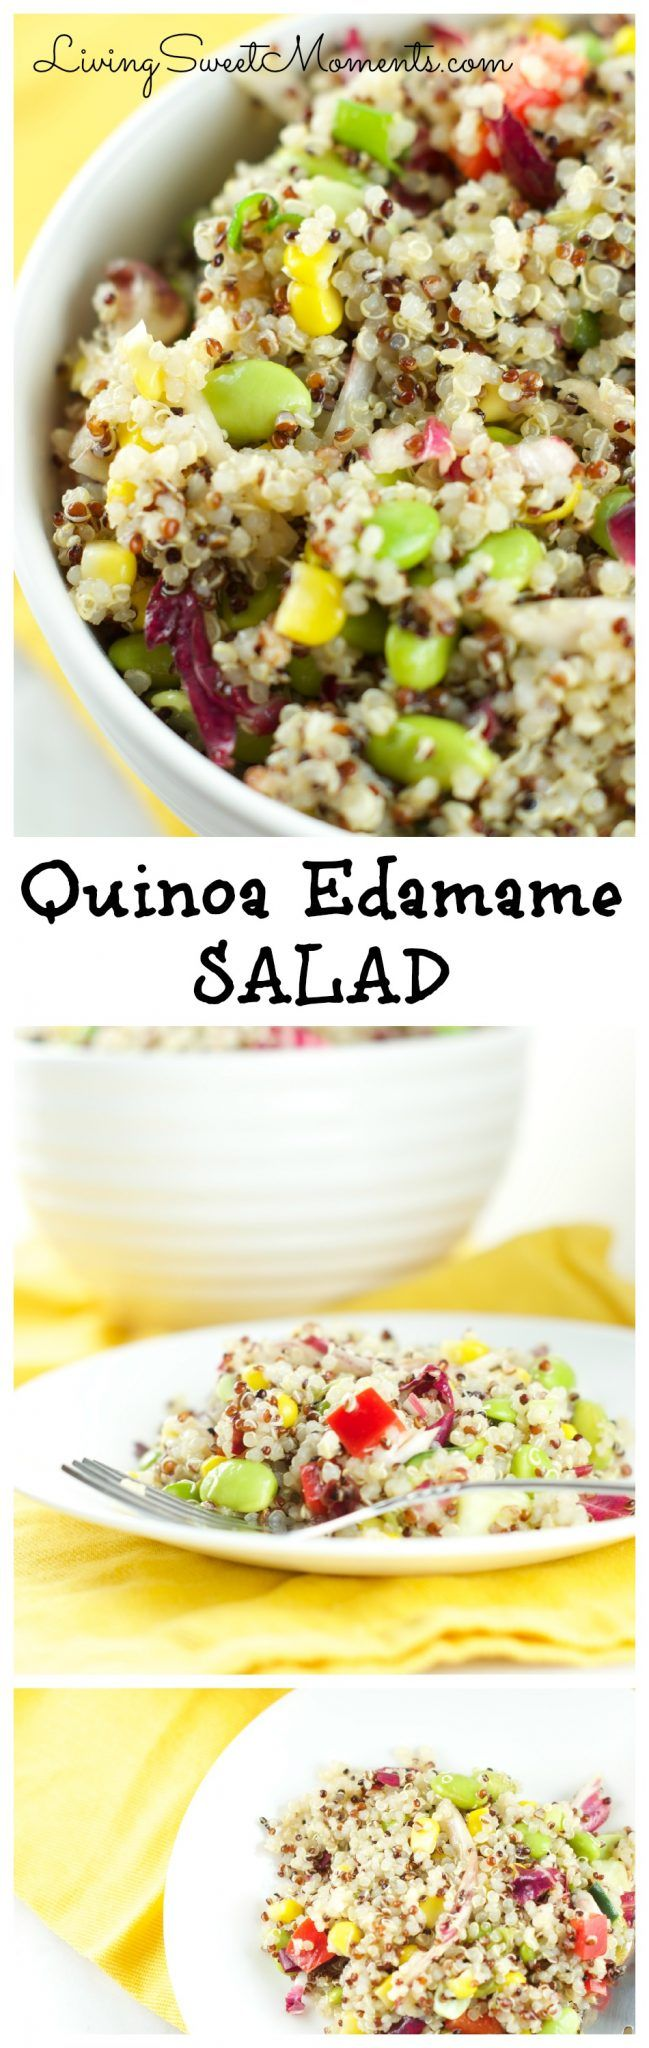 This fresh Quinoa Edamame Salad Recipe is colorful, crunchy and delicious. Served with an Asian-inspired vinaigrette and lots of veggies. Low fat and tasty. More healthy Quinoa recipes at livingsweetmoments.com via @Livingsmoments